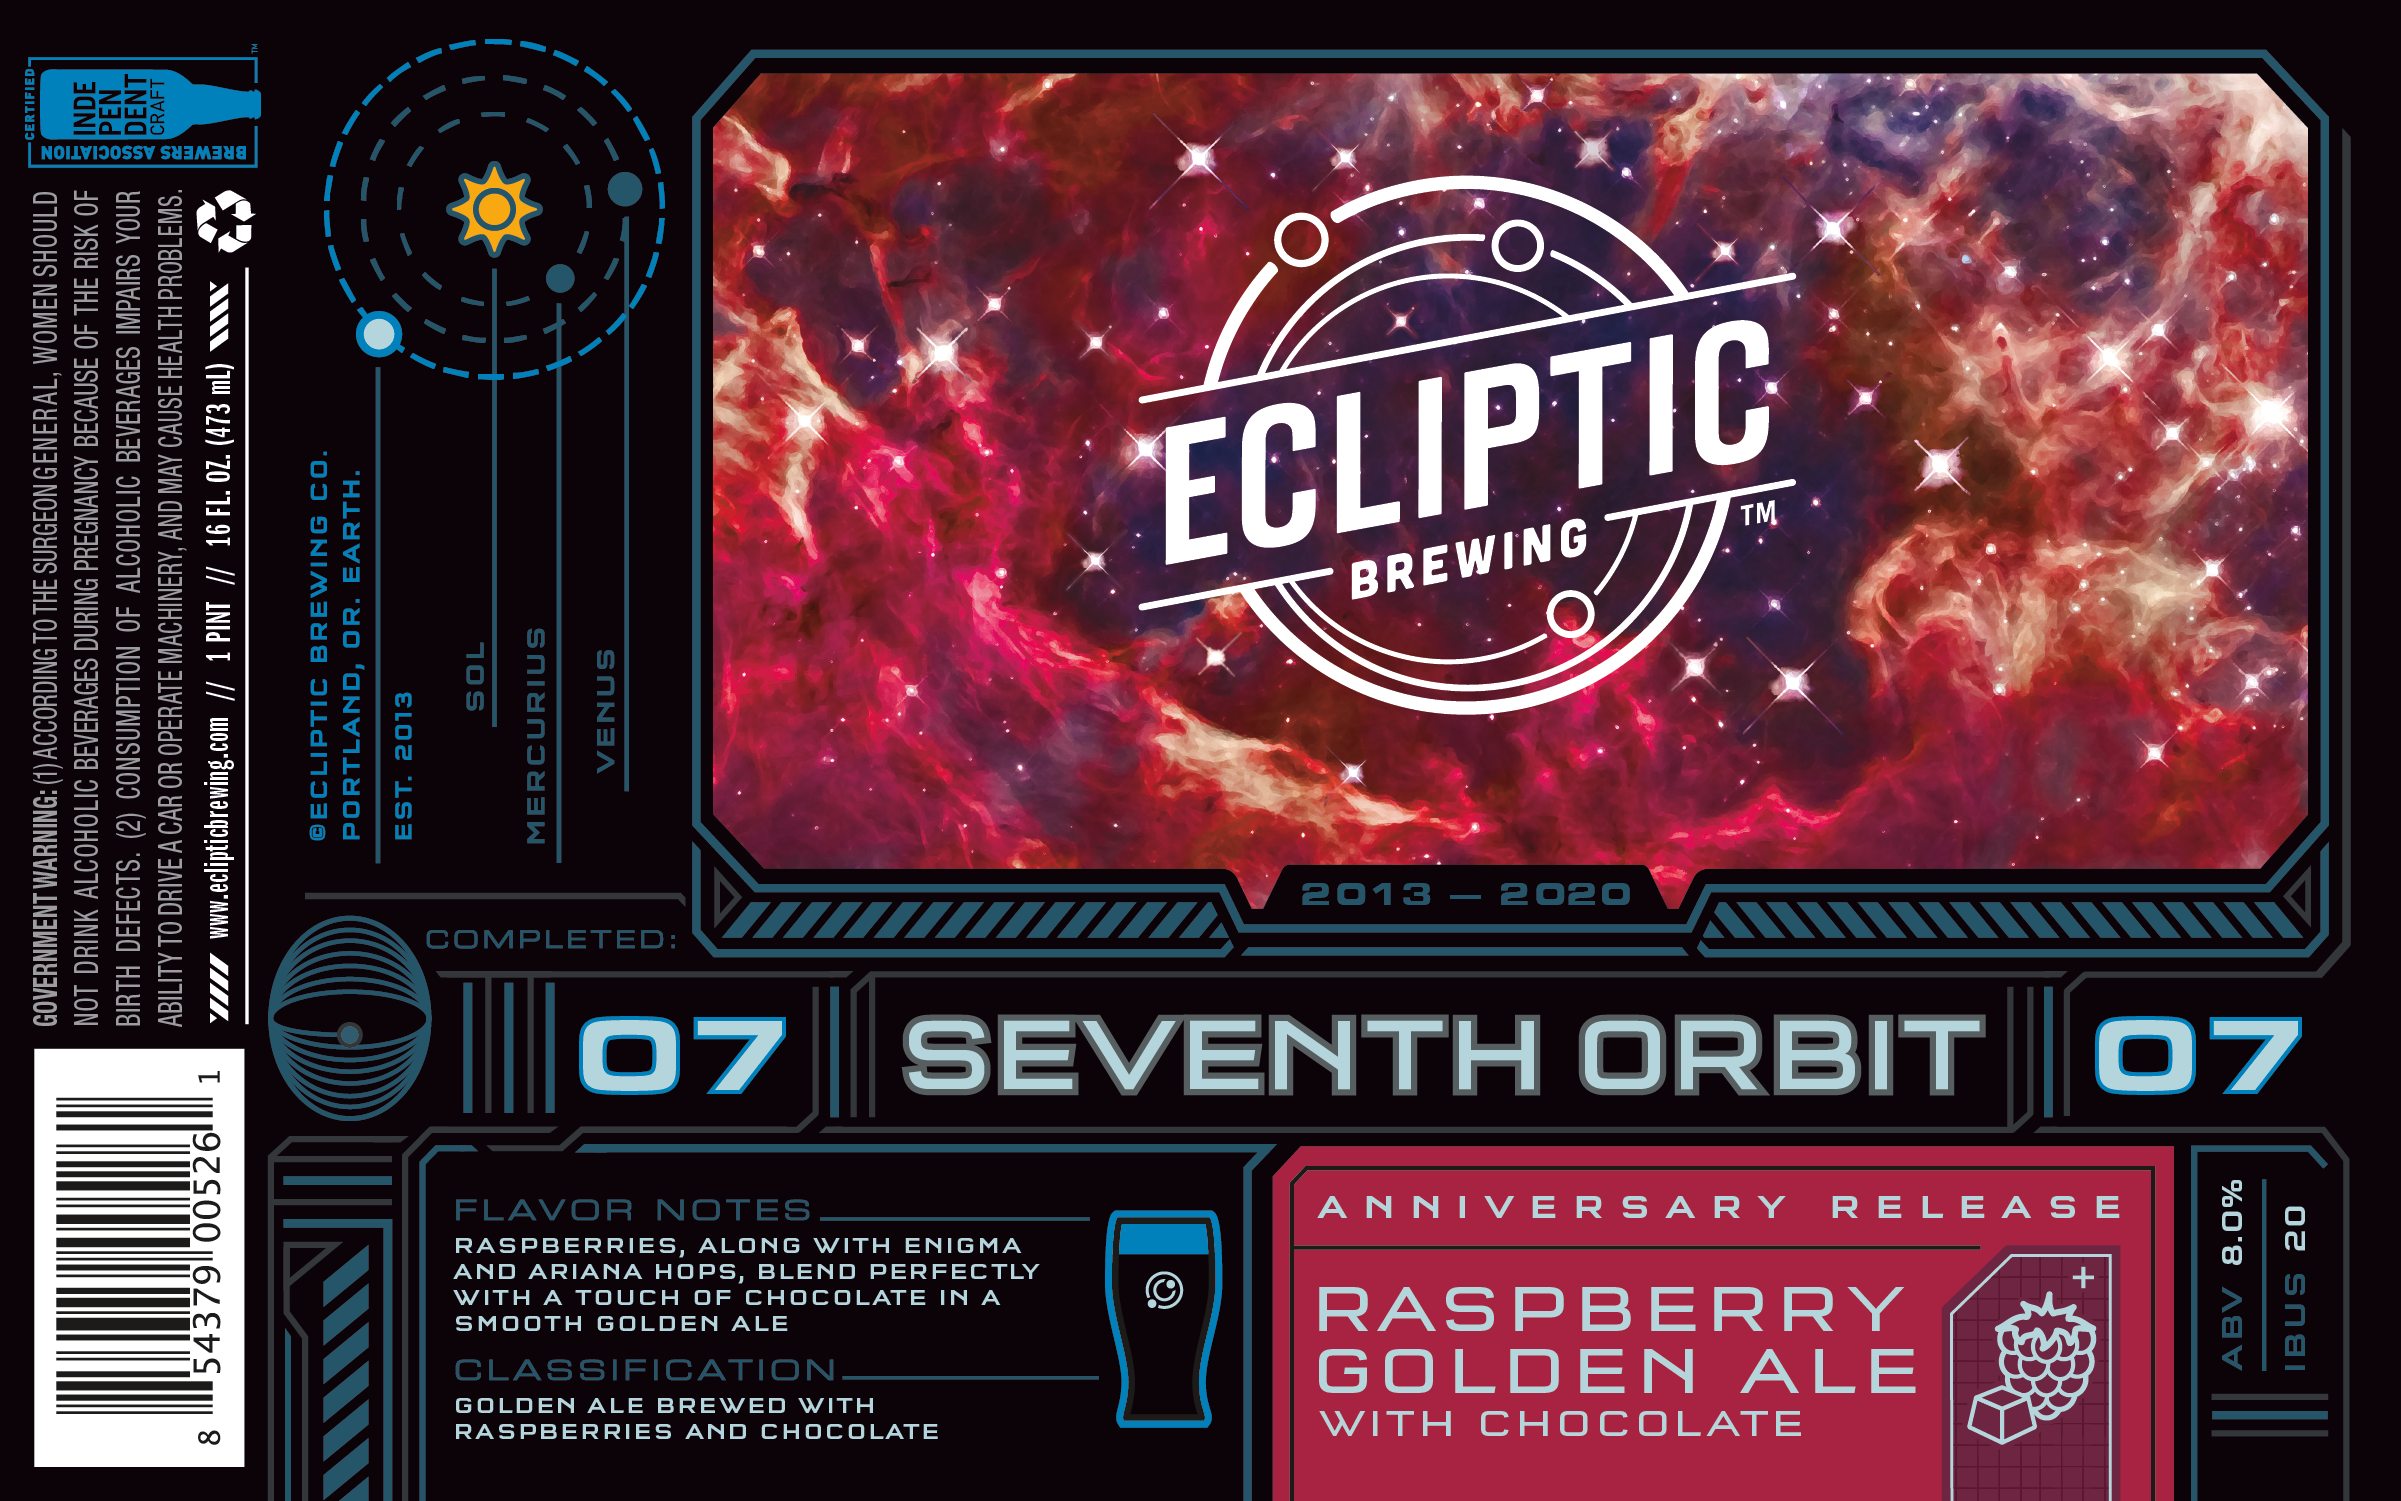 Ecliptic Brewing Seventh Orbit Raspberry Golden Ale with Chocolate Label